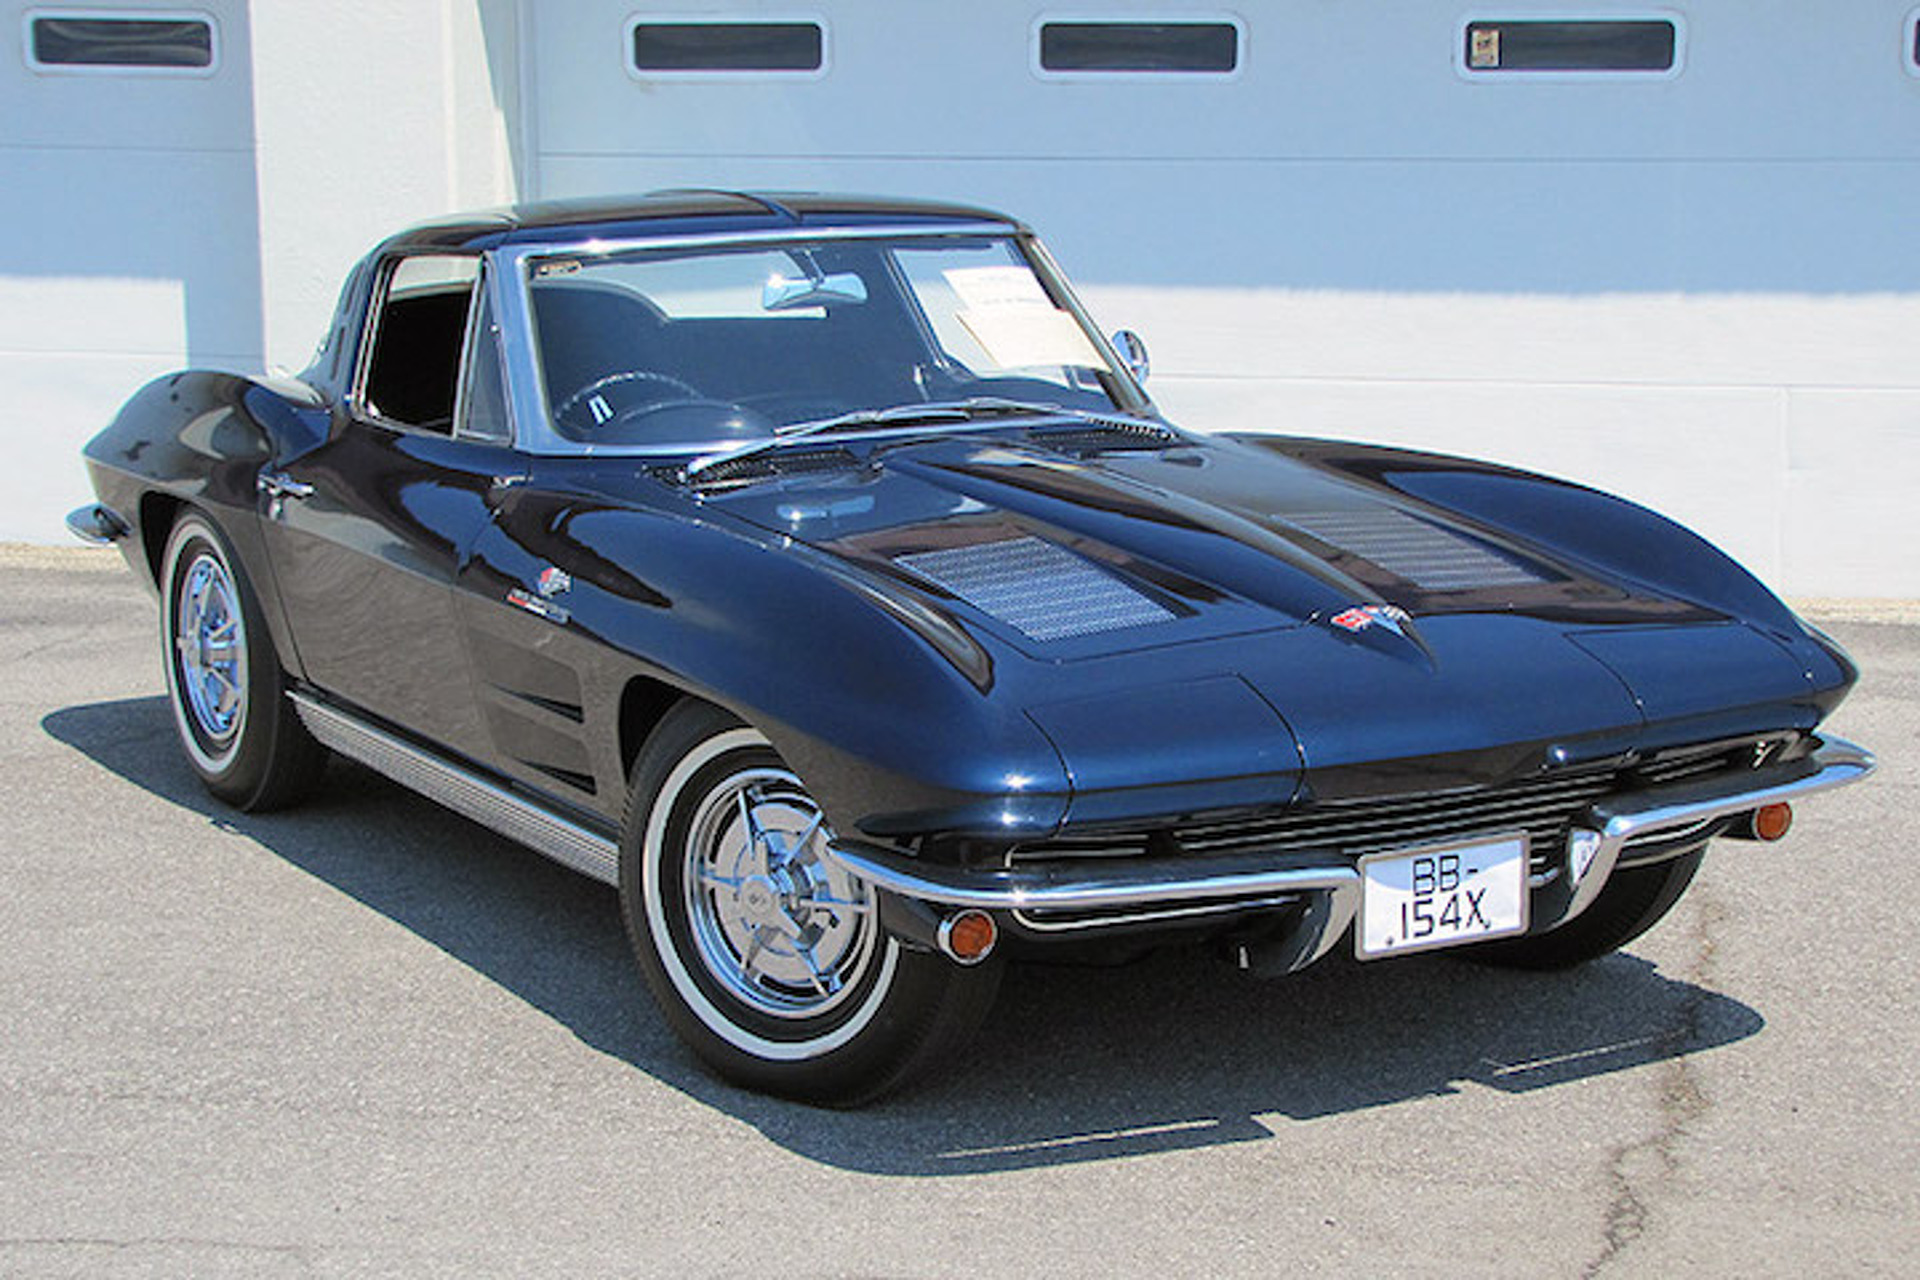 Right Hand Drive Cars for Sale Near Me Lovely the World S Only Right Hand Drive 1963 Corvette Z06 is Still A Mystery